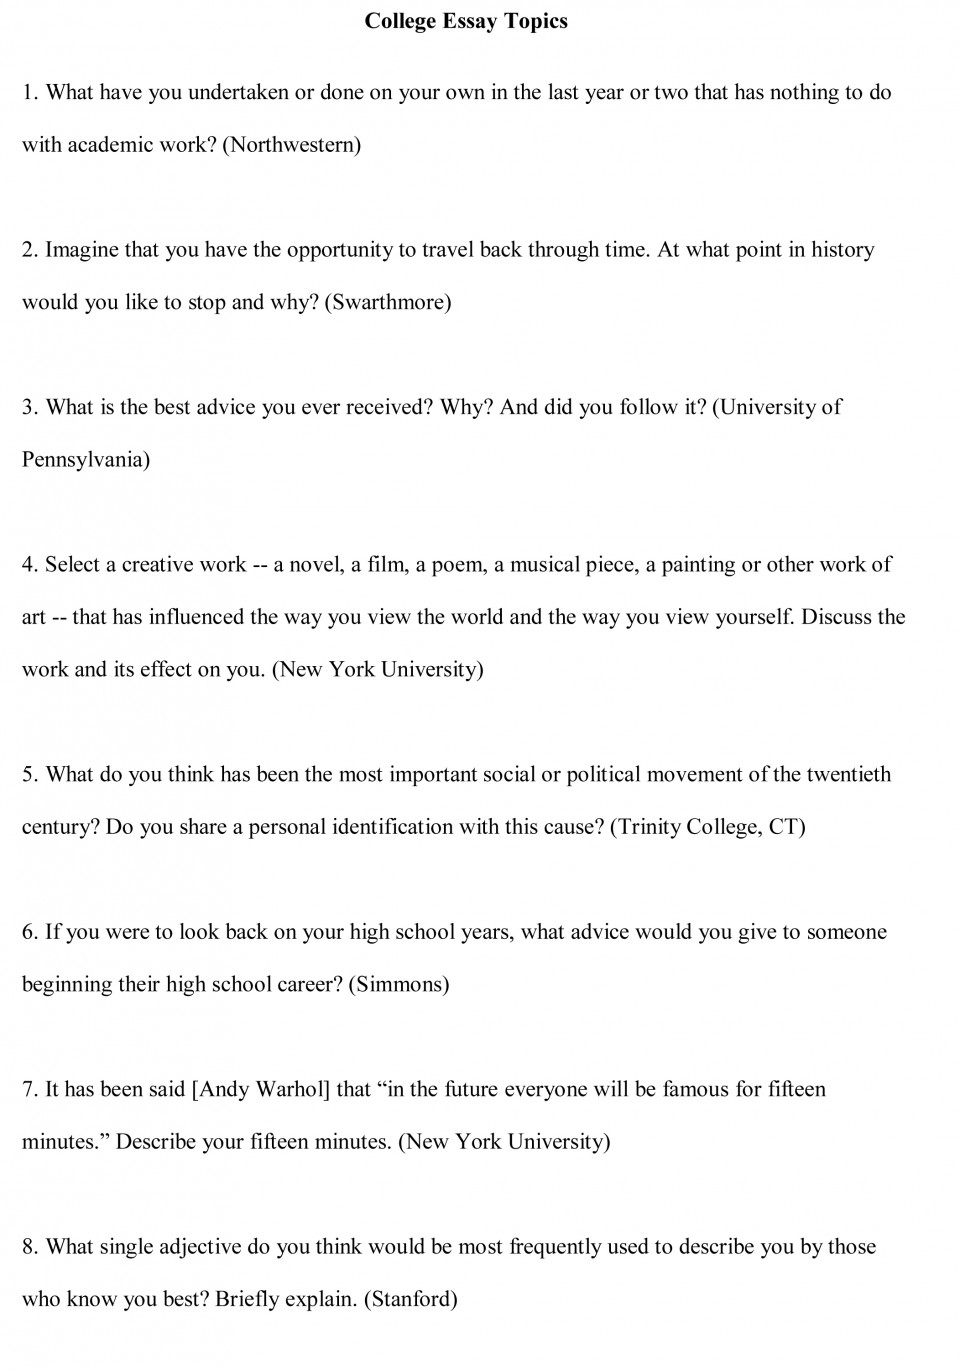 009 Research Paper Psychology Topics List College Essay Free Awesome Topic Ideas 960